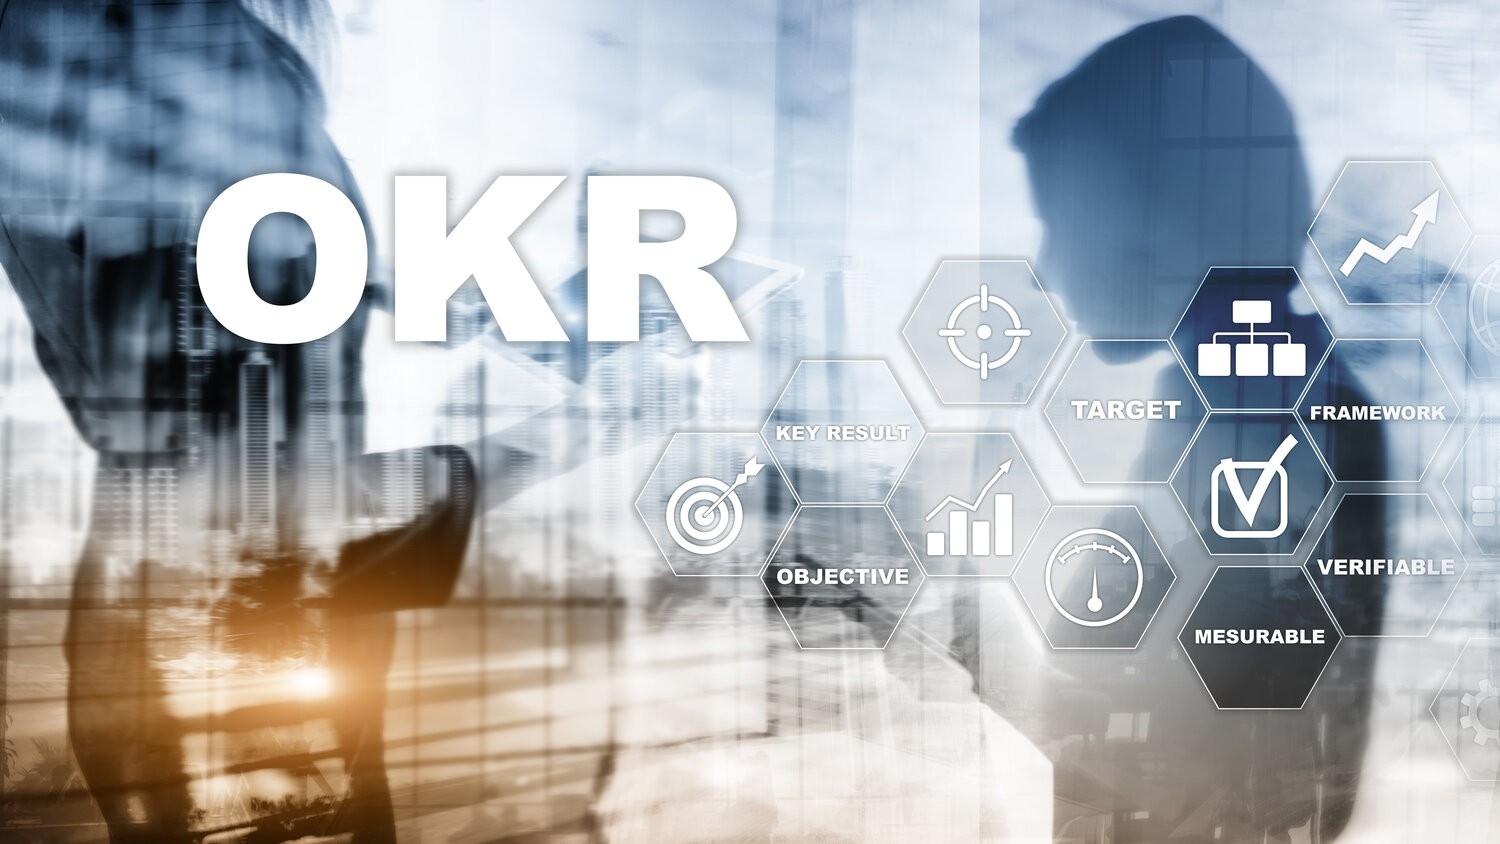 OKR - Objectives and Key Results